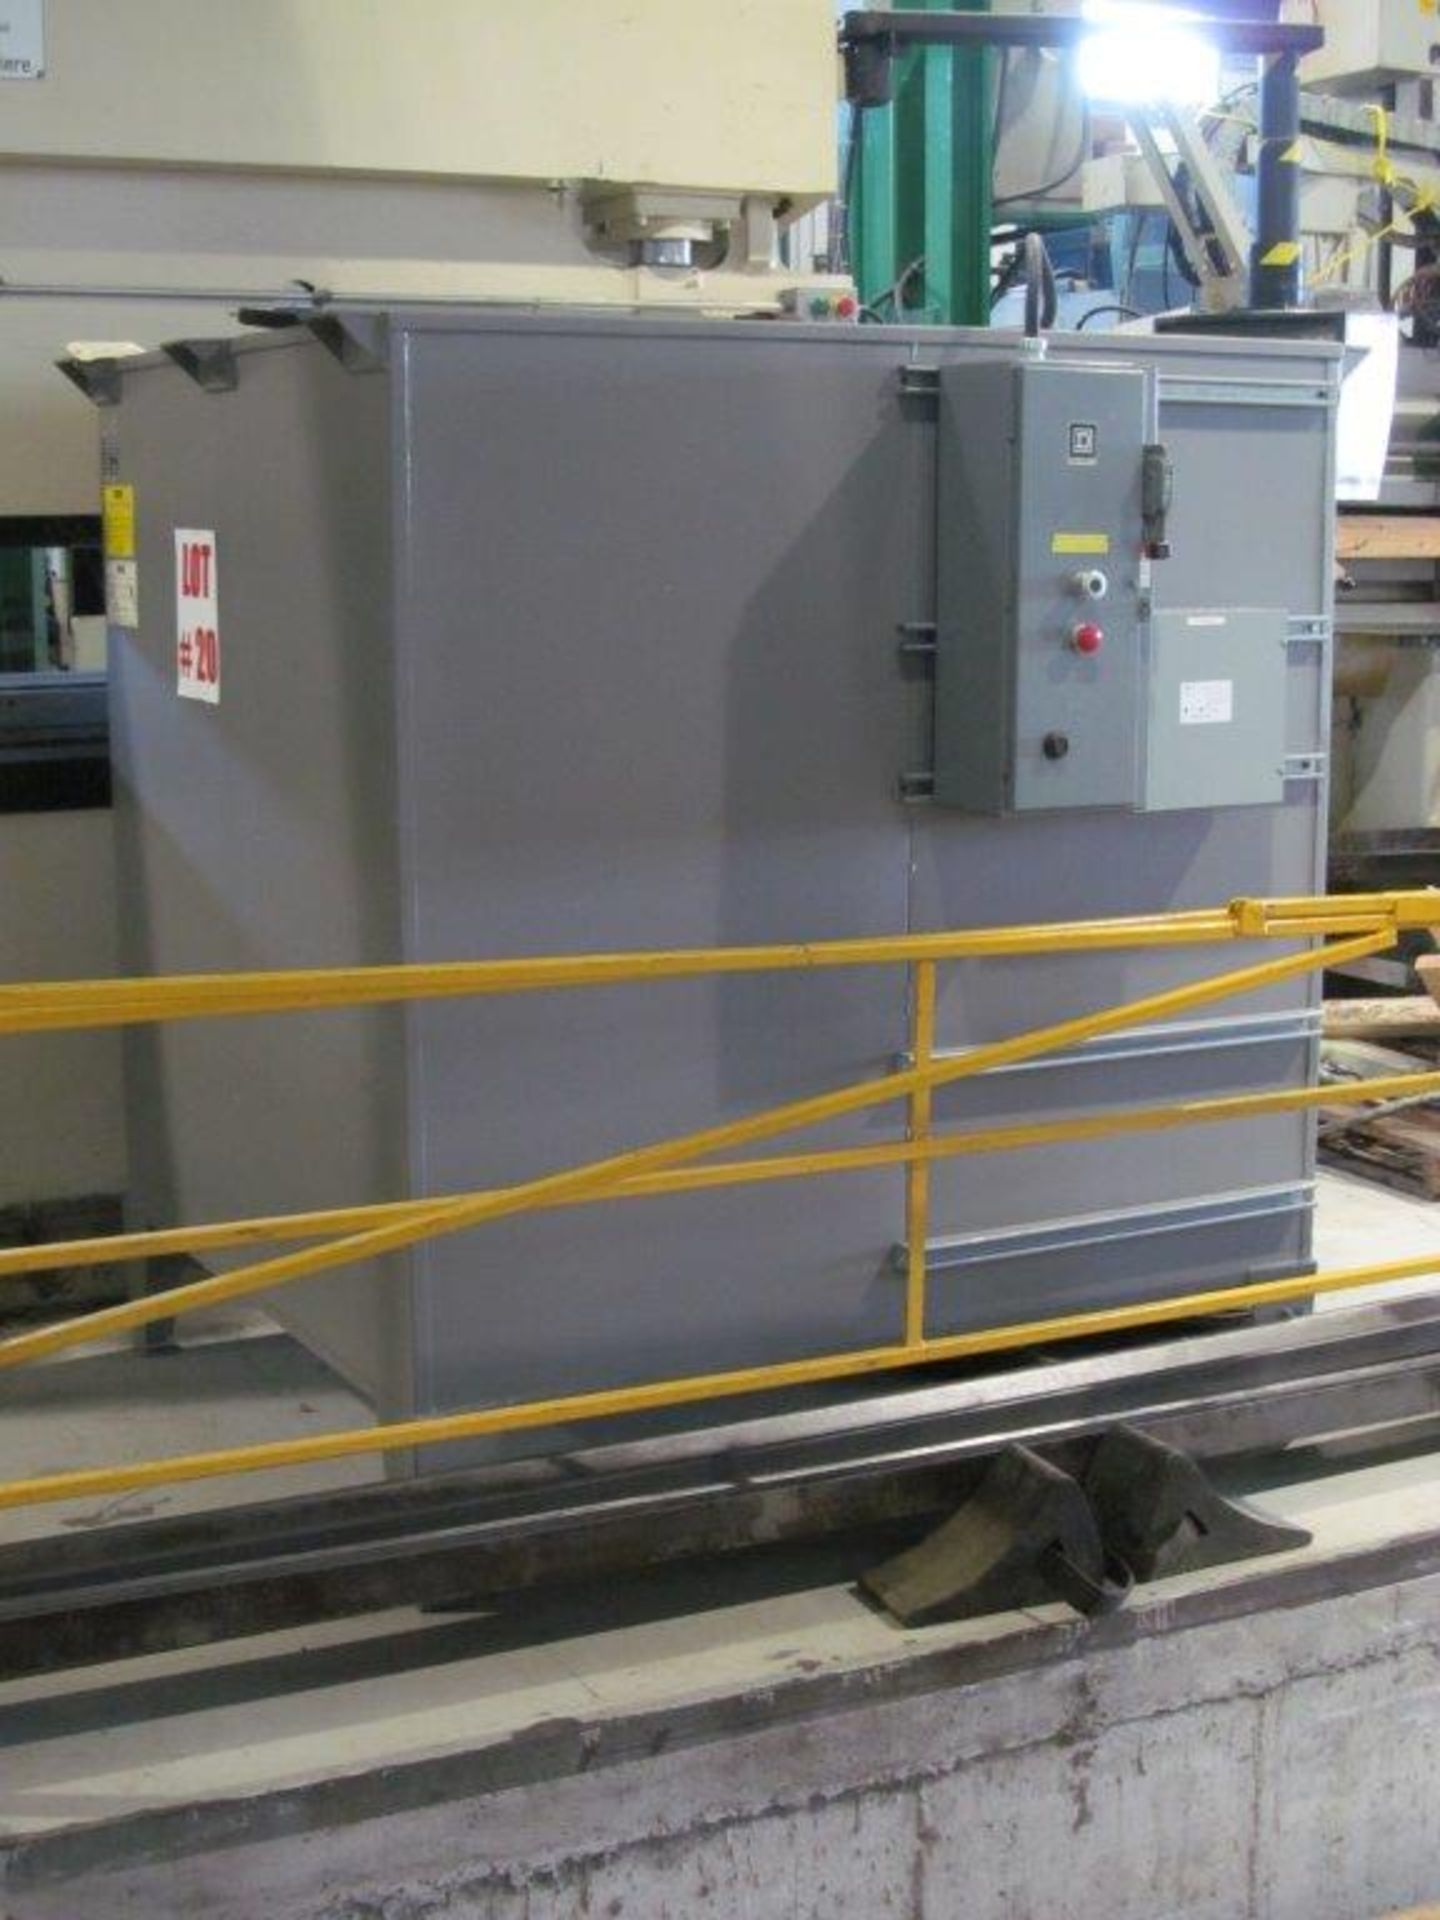 Lot 20 - U.A.S. MIST COLLECTOR, MDL. F-5000, S/N 60063160 - LOCATION, MONTREAL, QUEBEC